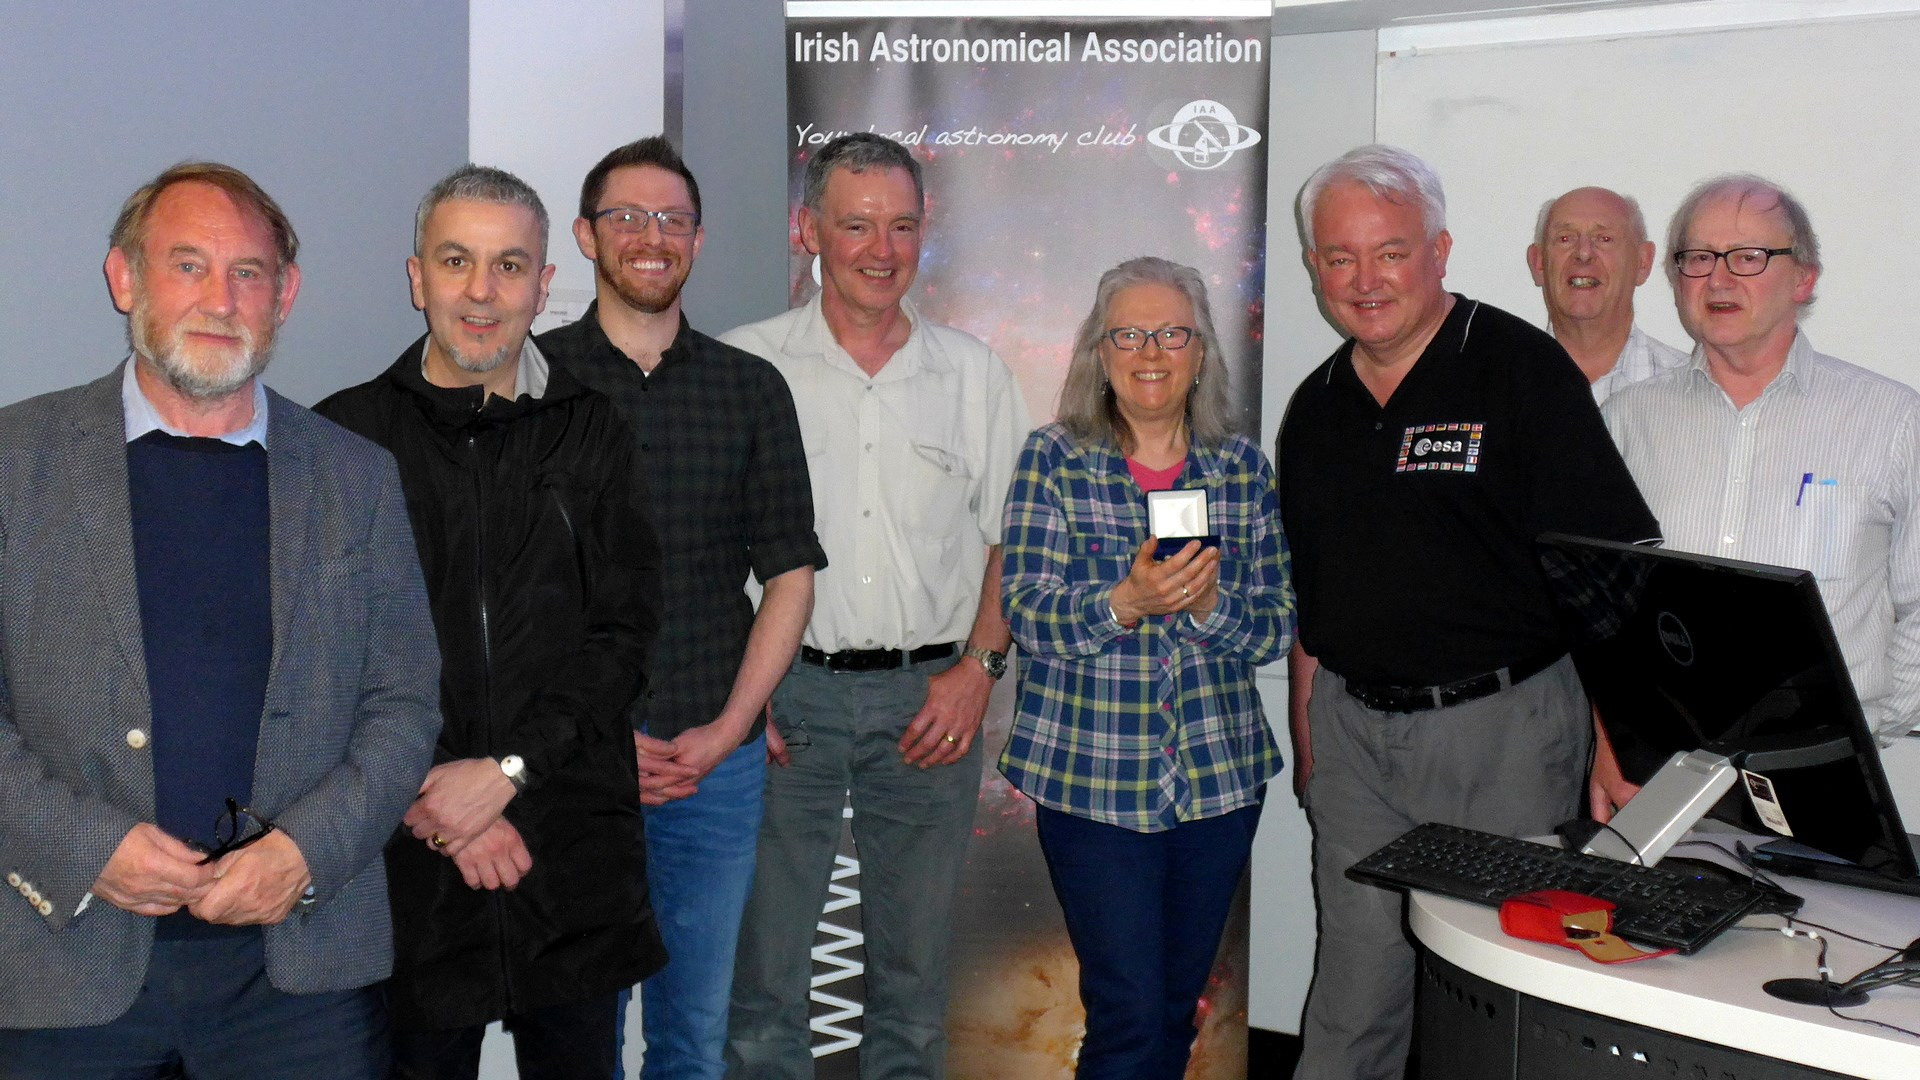 New IAA Council elected